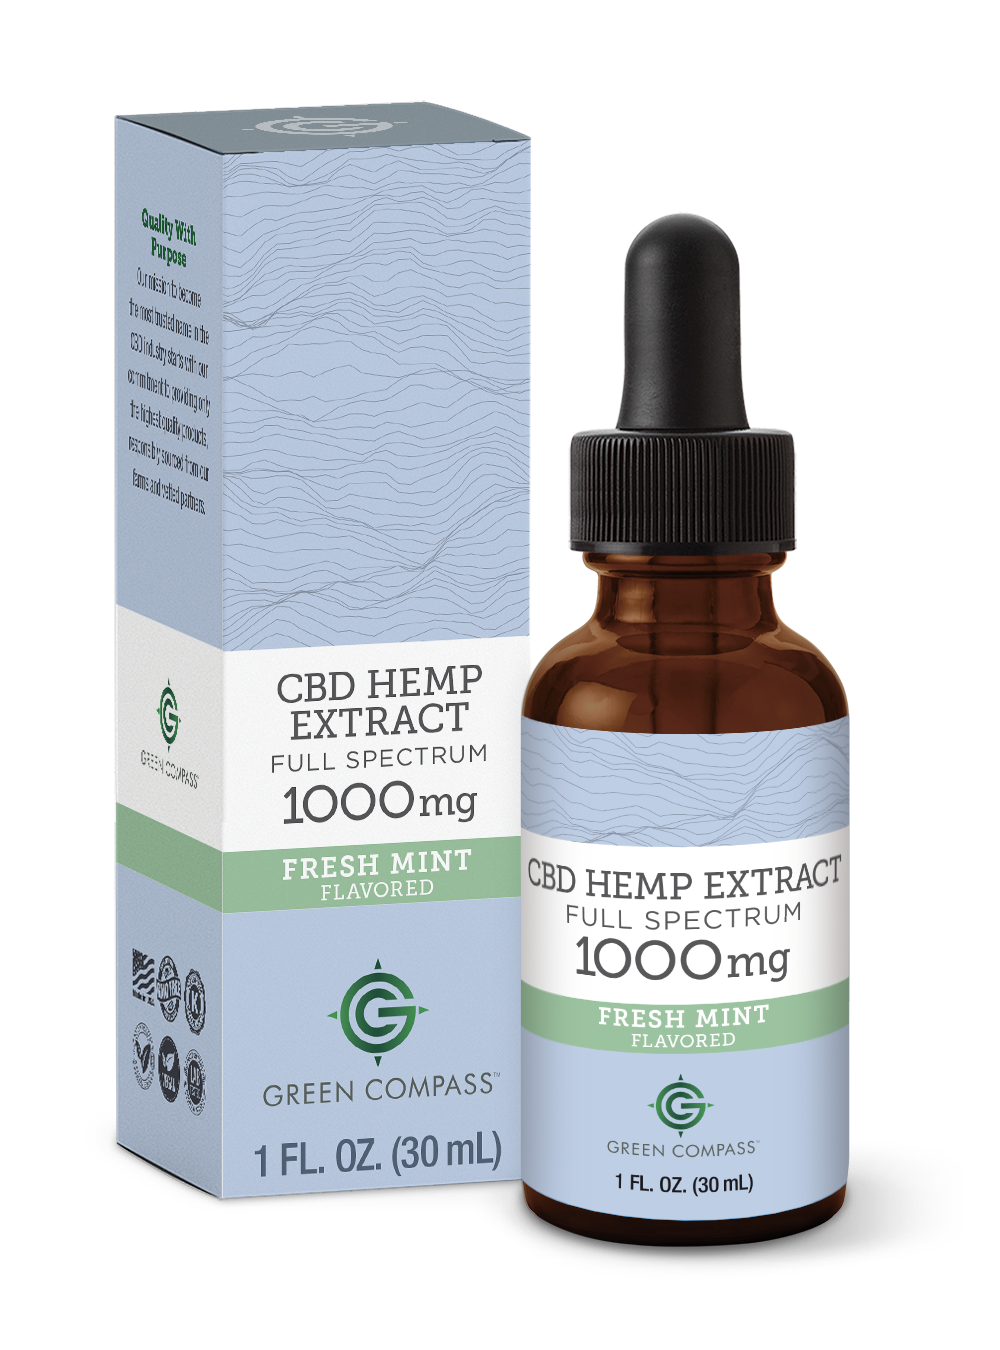 Green Compass Full Spectrum-Mint 1000mg Tincture Bottle and Box